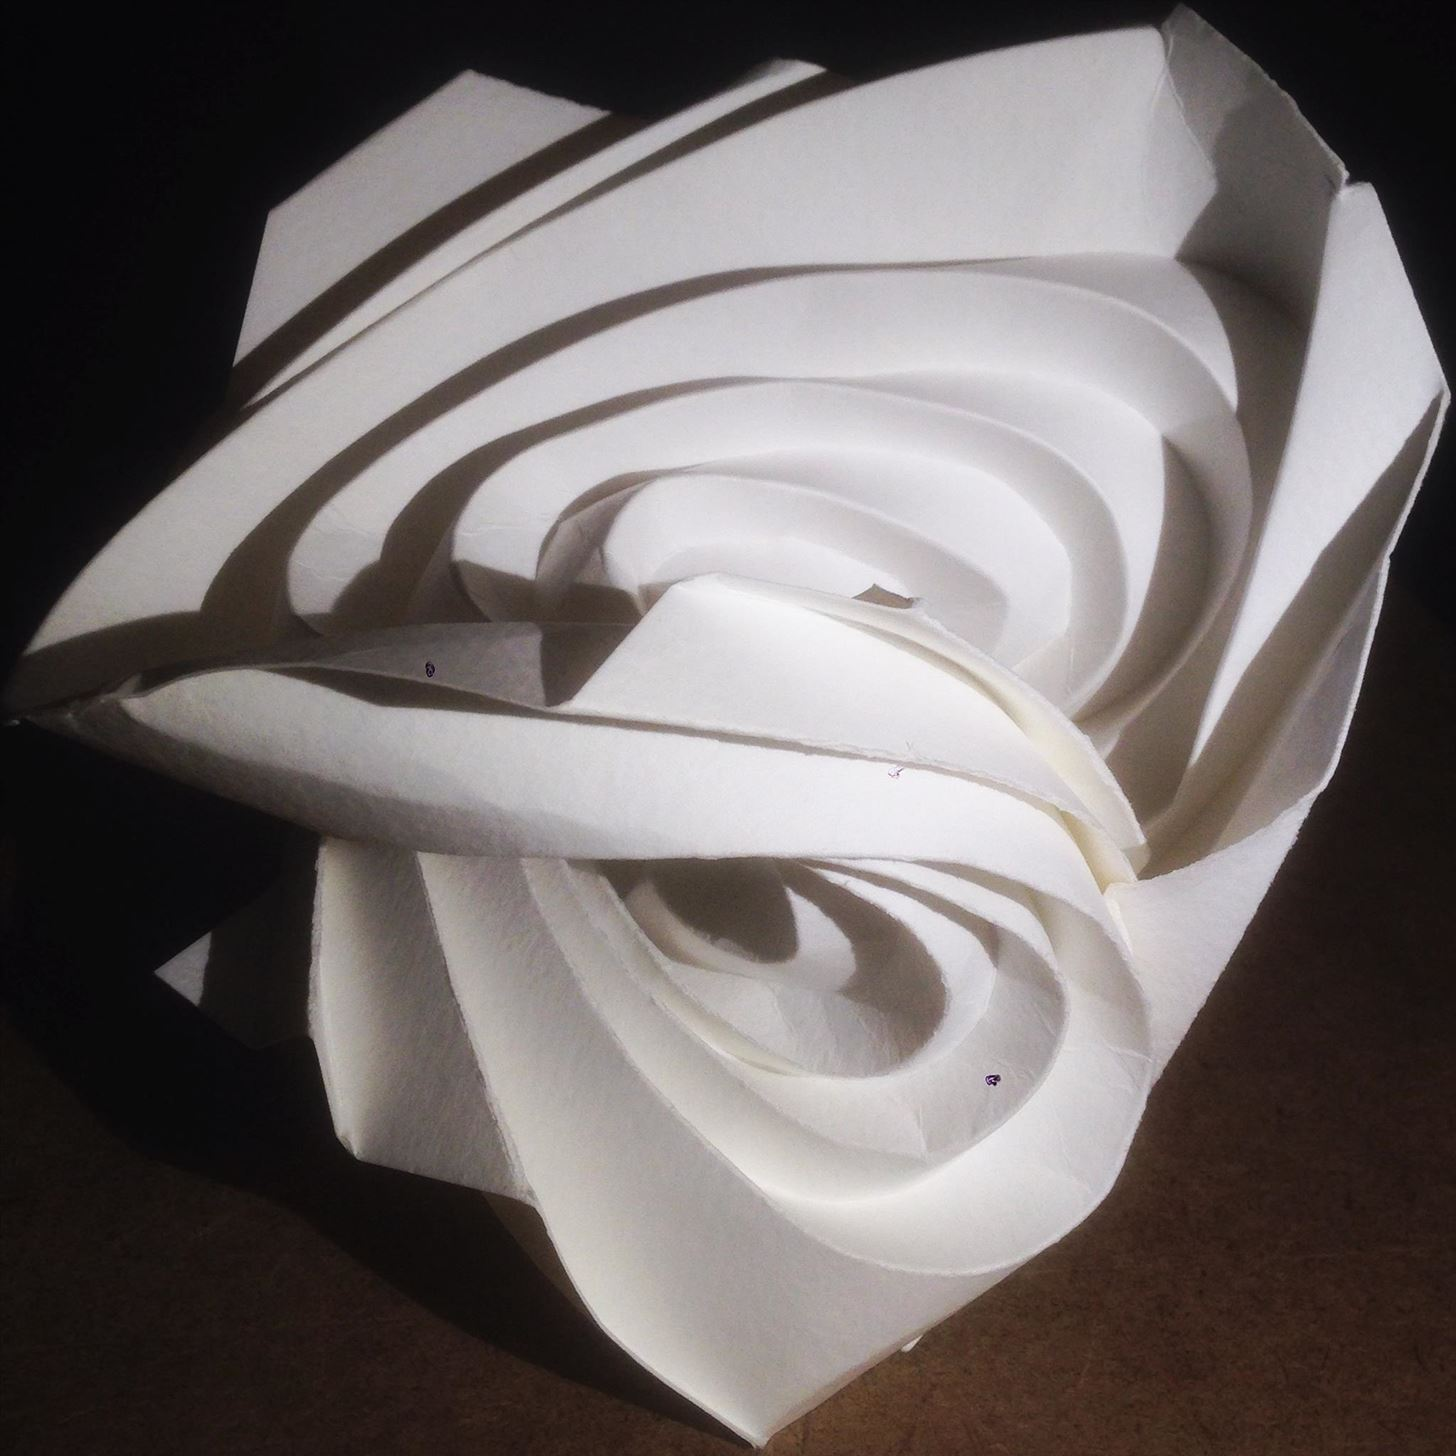 Curvy origami designs I am working on: